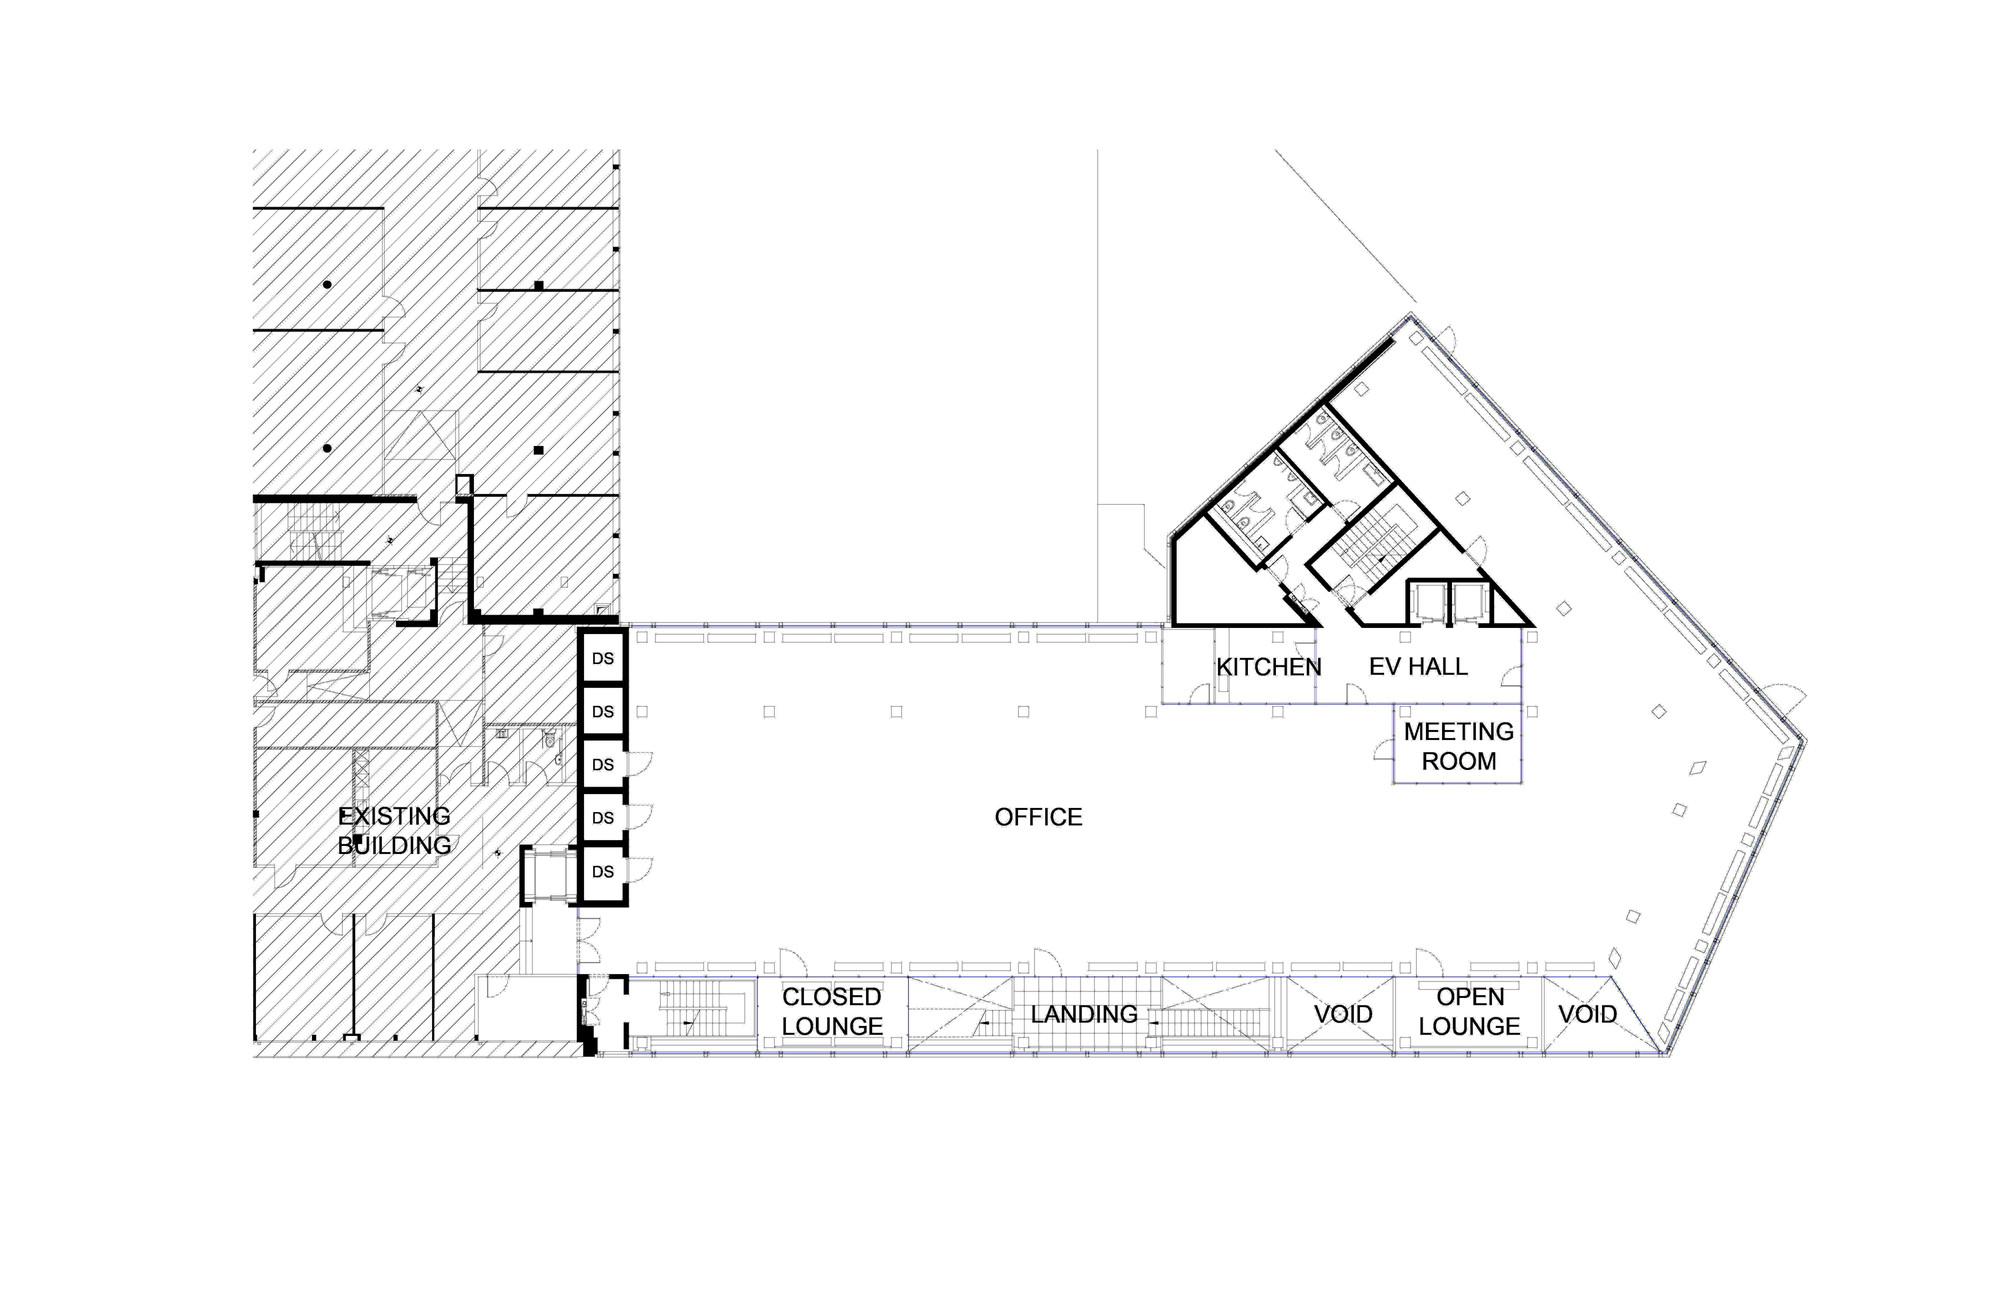 How to find floor plans for existing commercial buildings for How to find a designer for home